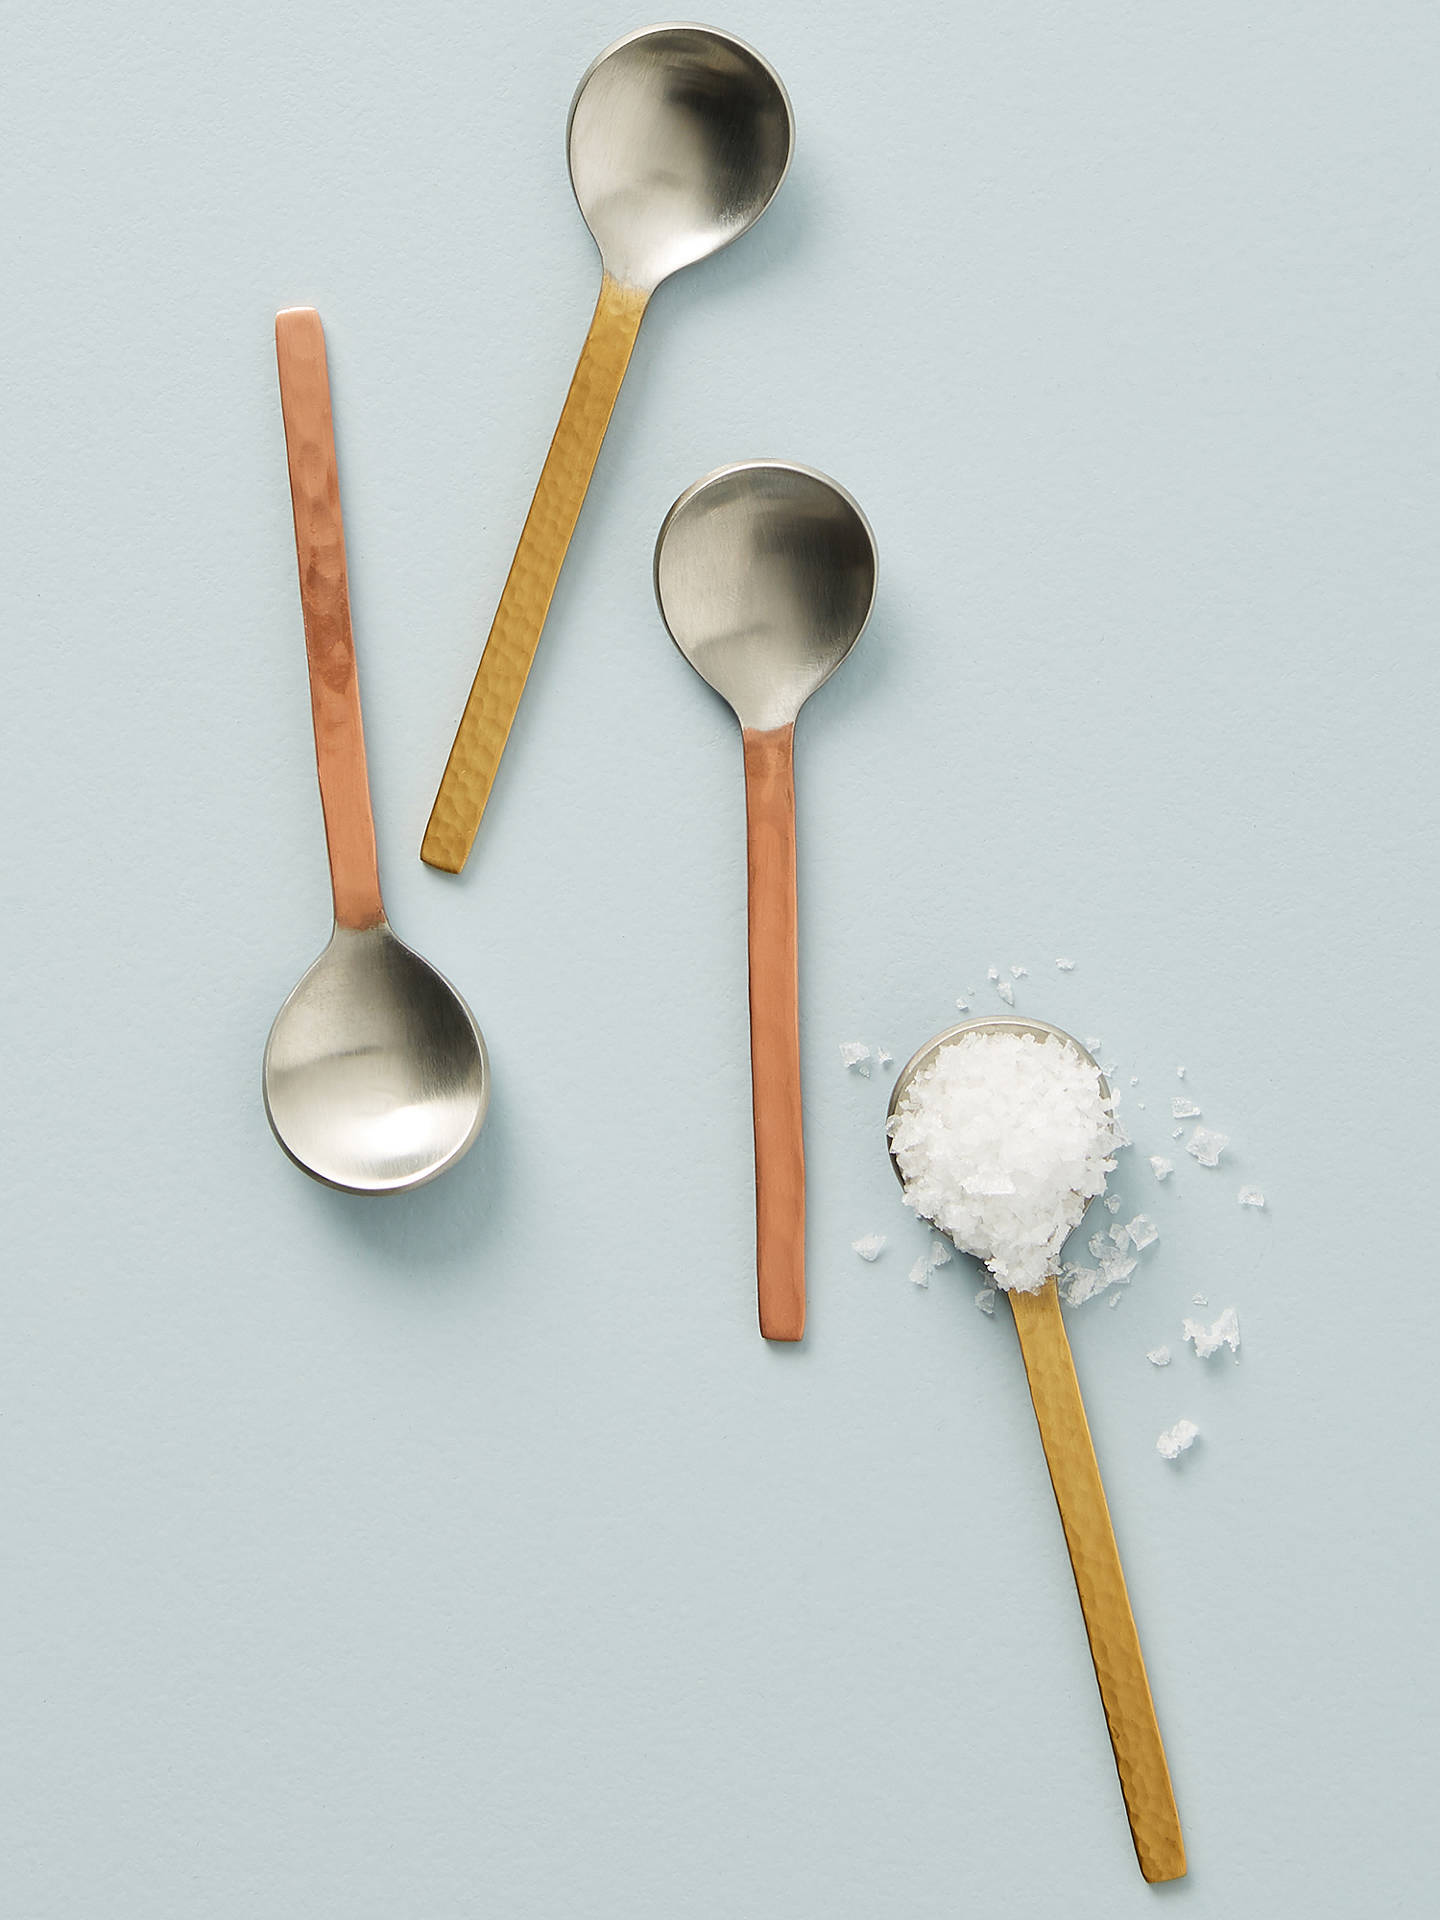 Buy Anthropologie Caru Condiment Spoons, Set of 4, L11cm Online at johnlewis.com